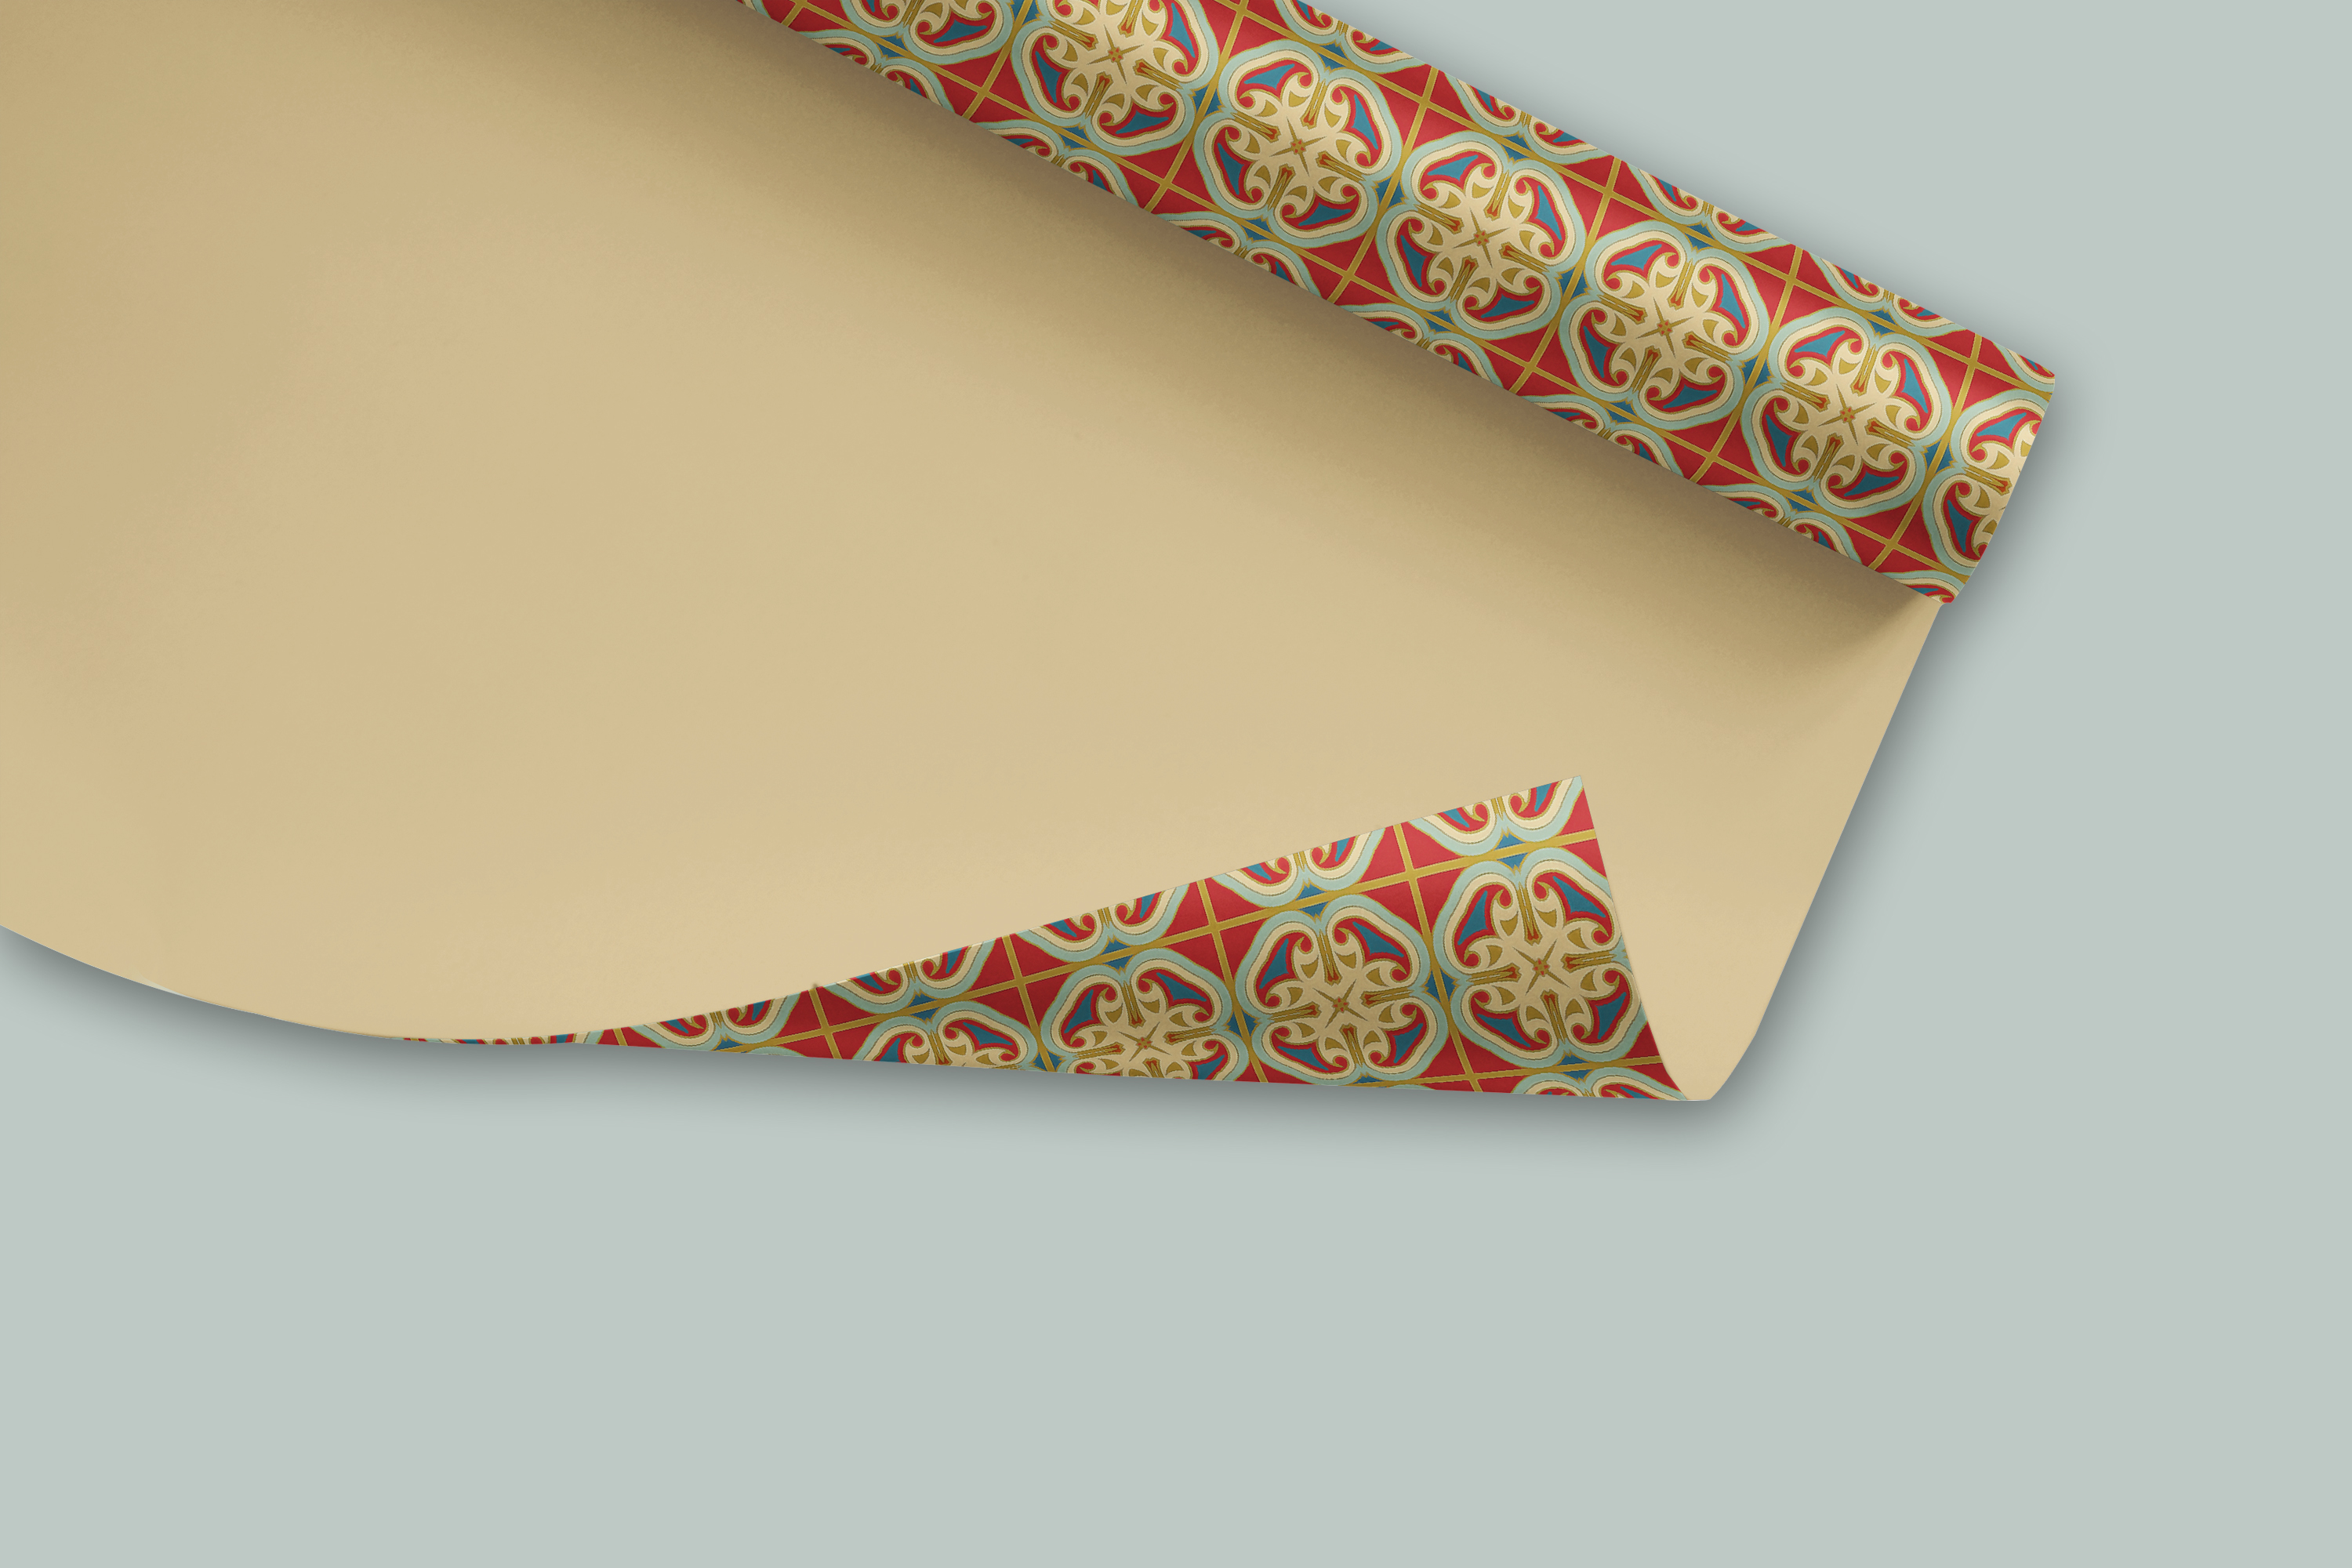 38 Arabesque Papers JPG & 20 Seamless Tiles PS Patterns PAT example image 7